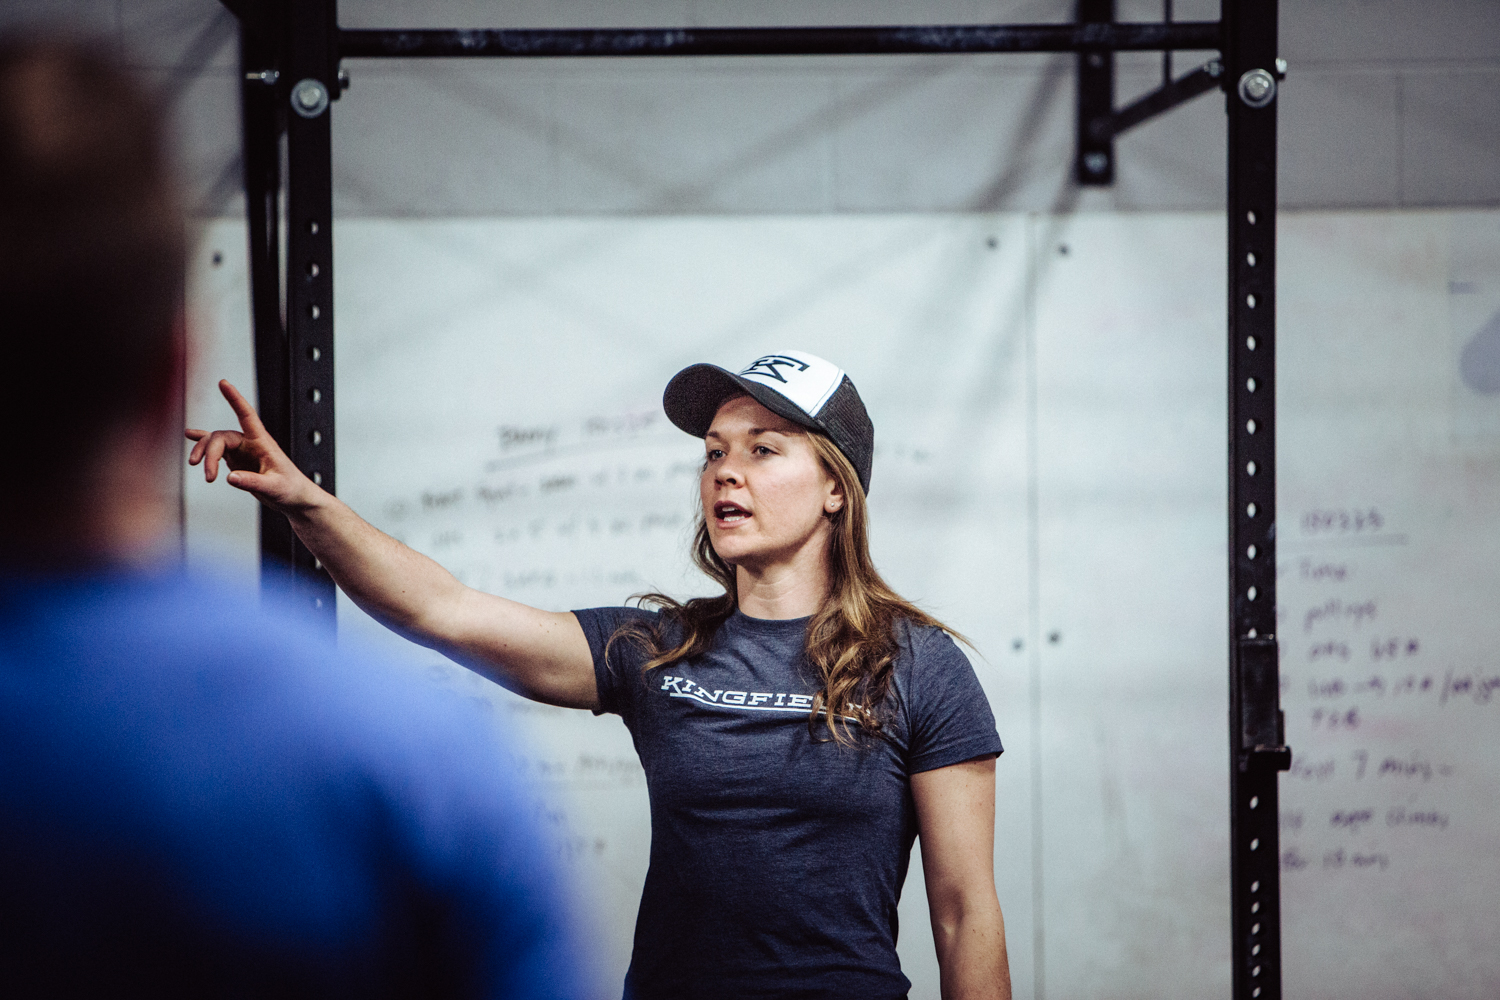 """""""You may catch a glimpse of how CrossFit and marathoning married in my mind. While the physical demands are  very different, the mental challenge they both pose fuels my competitive and intense nature."""""""